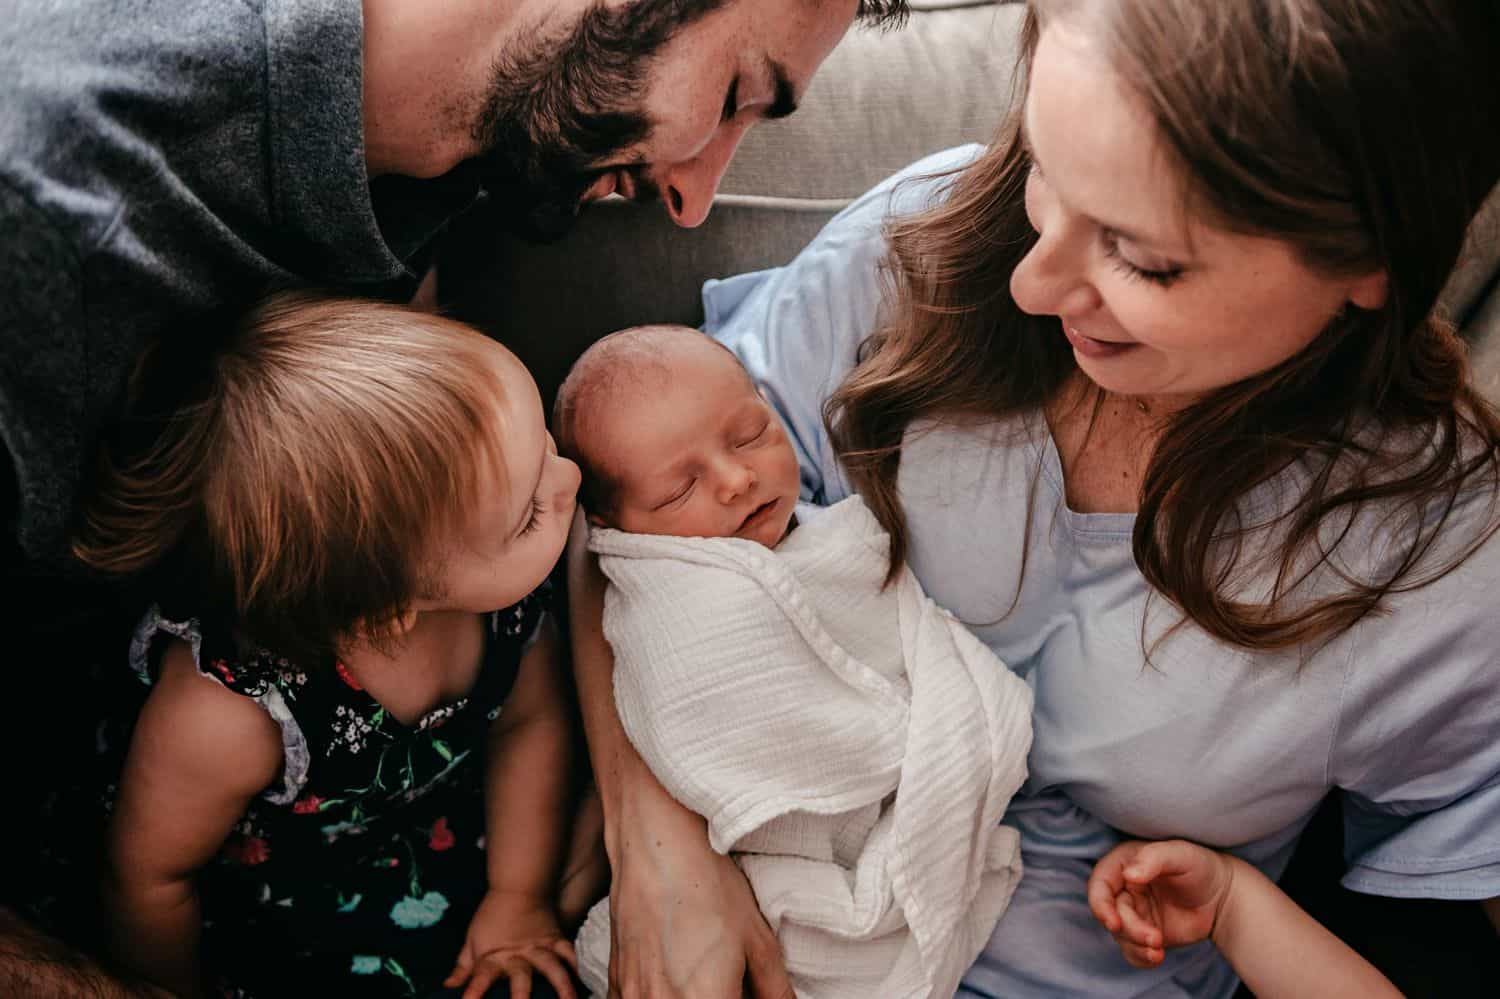 The Ultimate Portfolio Review Tool: A family gathers around their newborn baby.